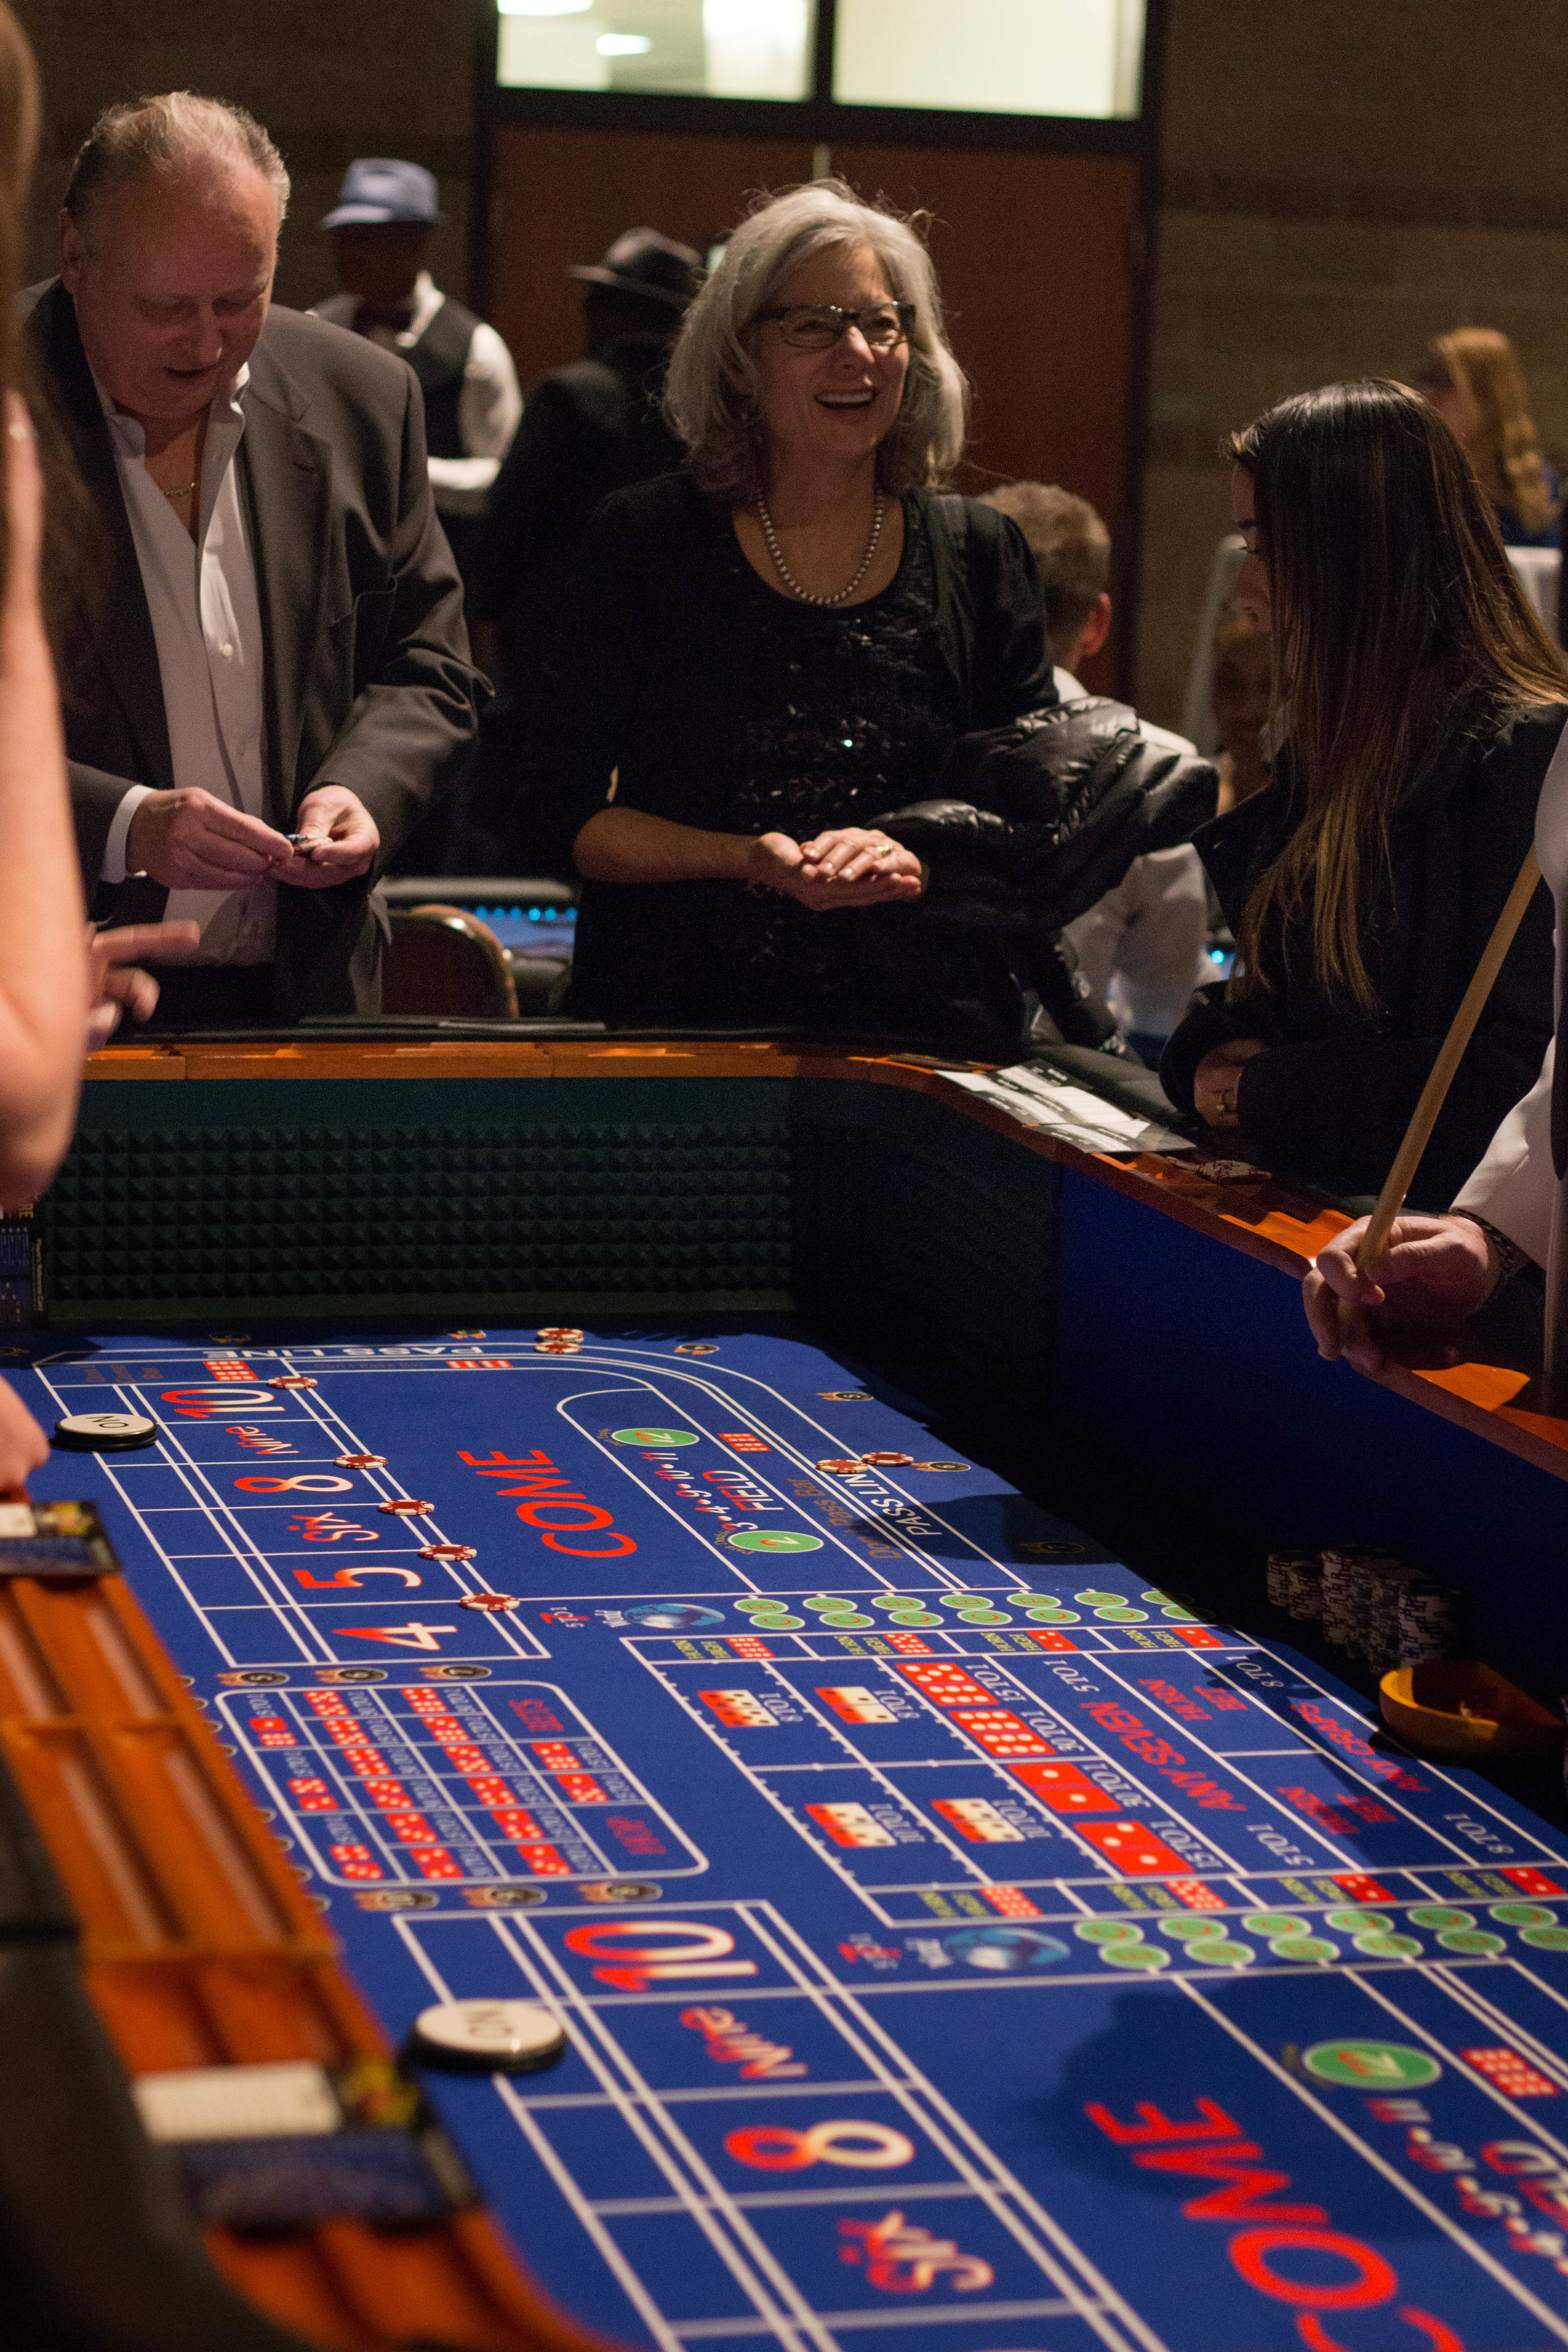 Full sized blue craps table